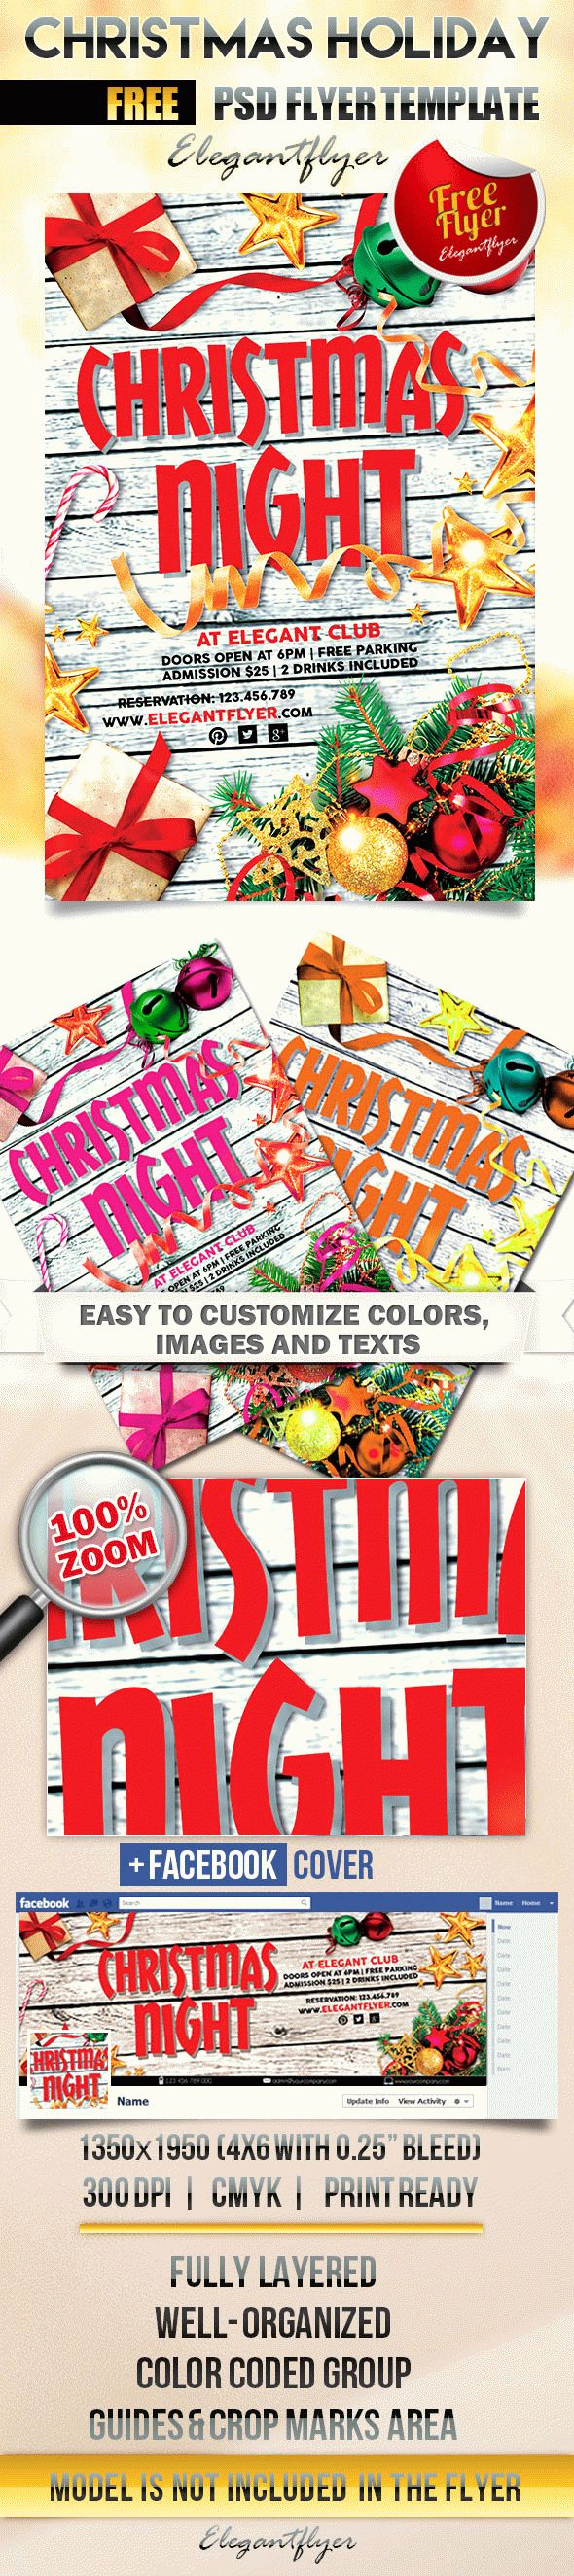 Free Christmas Flyer Templates Awesome Christmas Holiday – Free Flyer Psd Template – by Elegantflyer